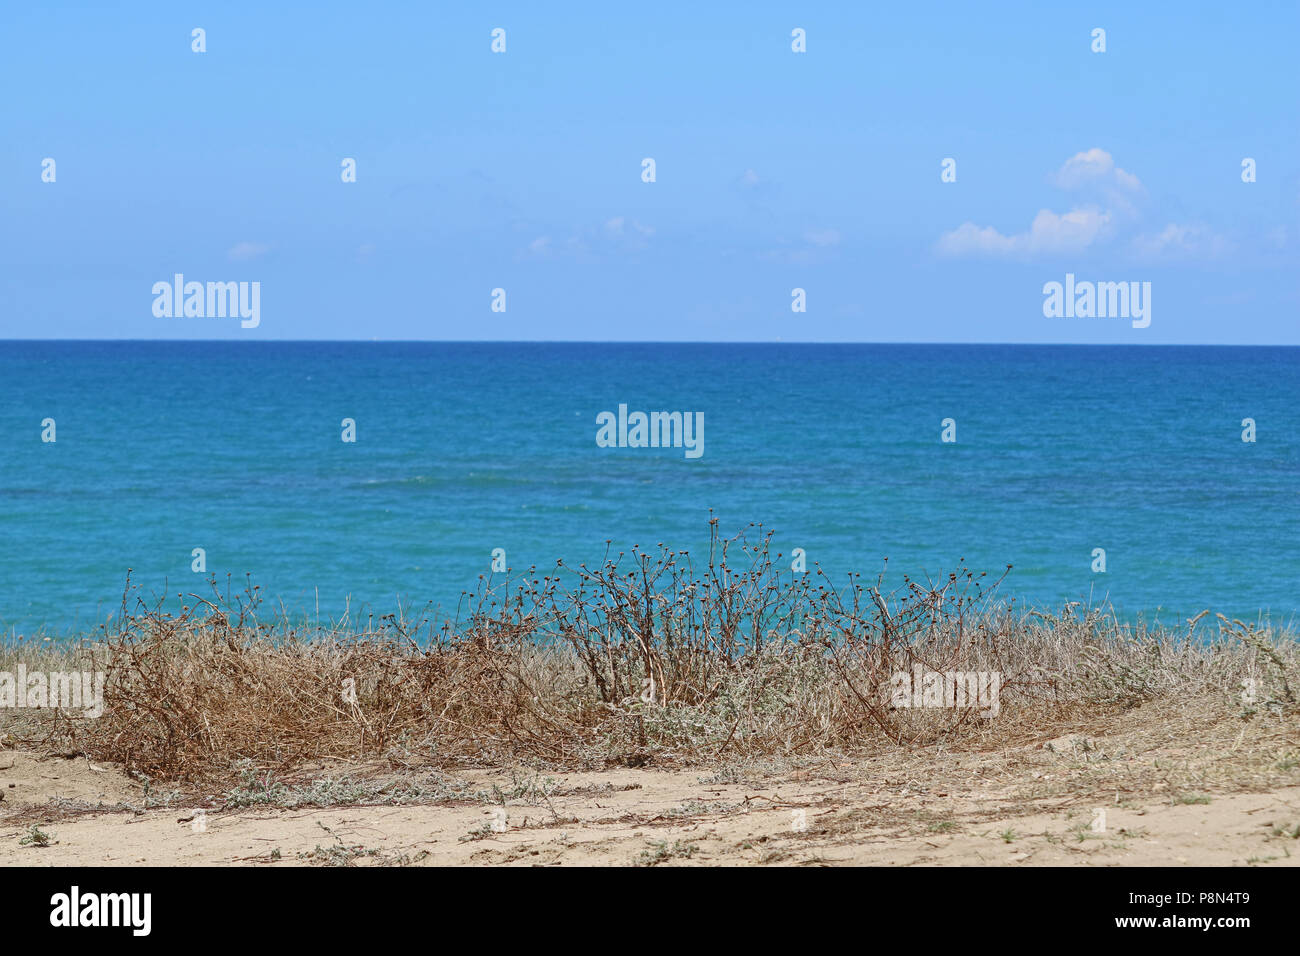 Beautyful Sea Background With Dry Grass On Sandy Ground Blue Sea